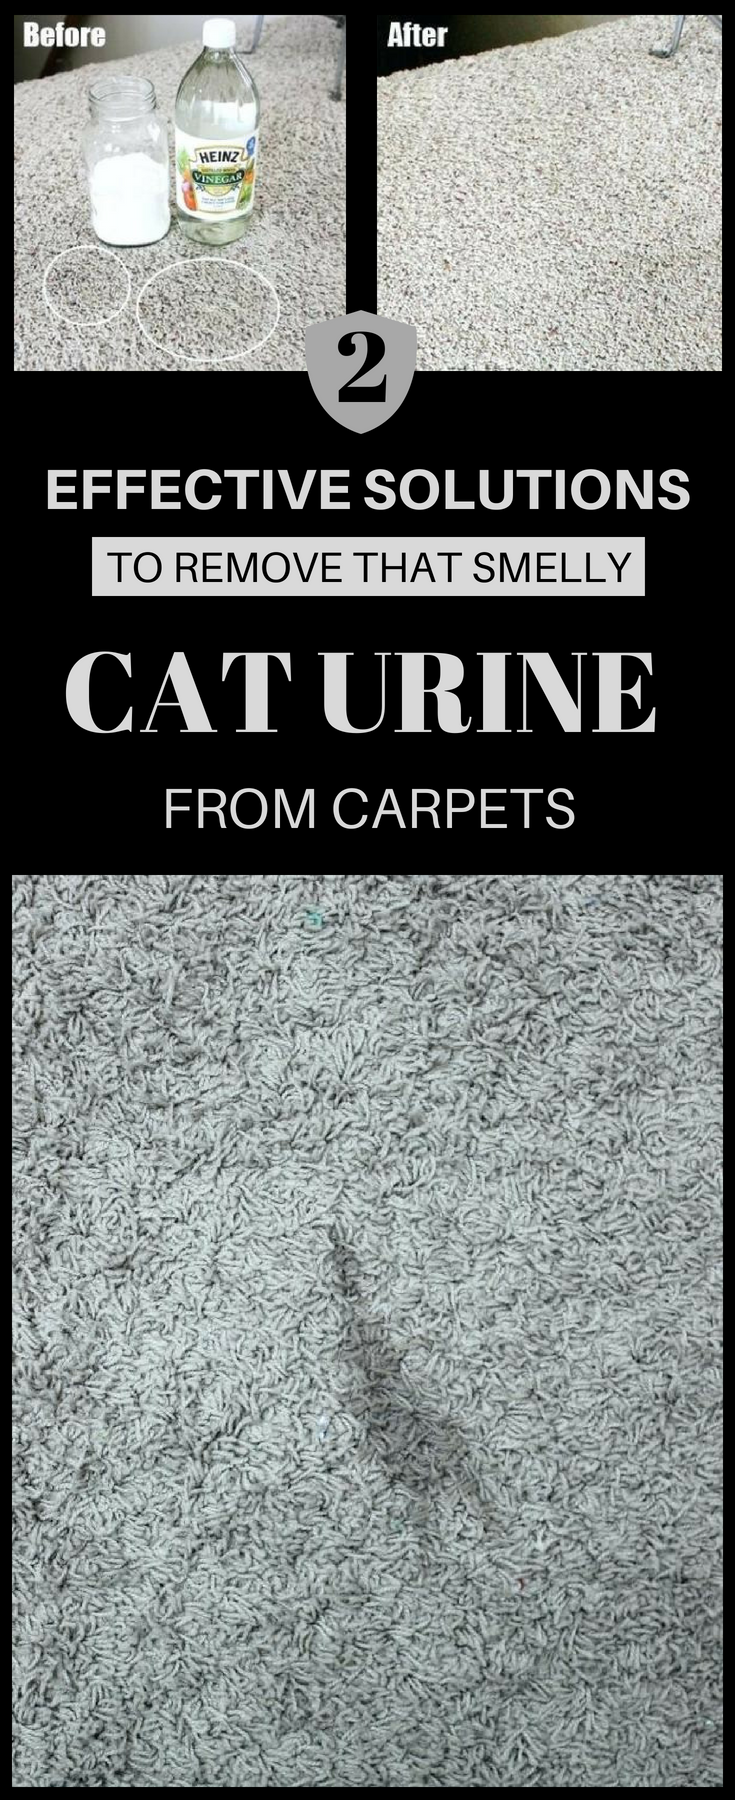 2 Effective Solutions To Remove That Smelly Cat Urine From Carpets